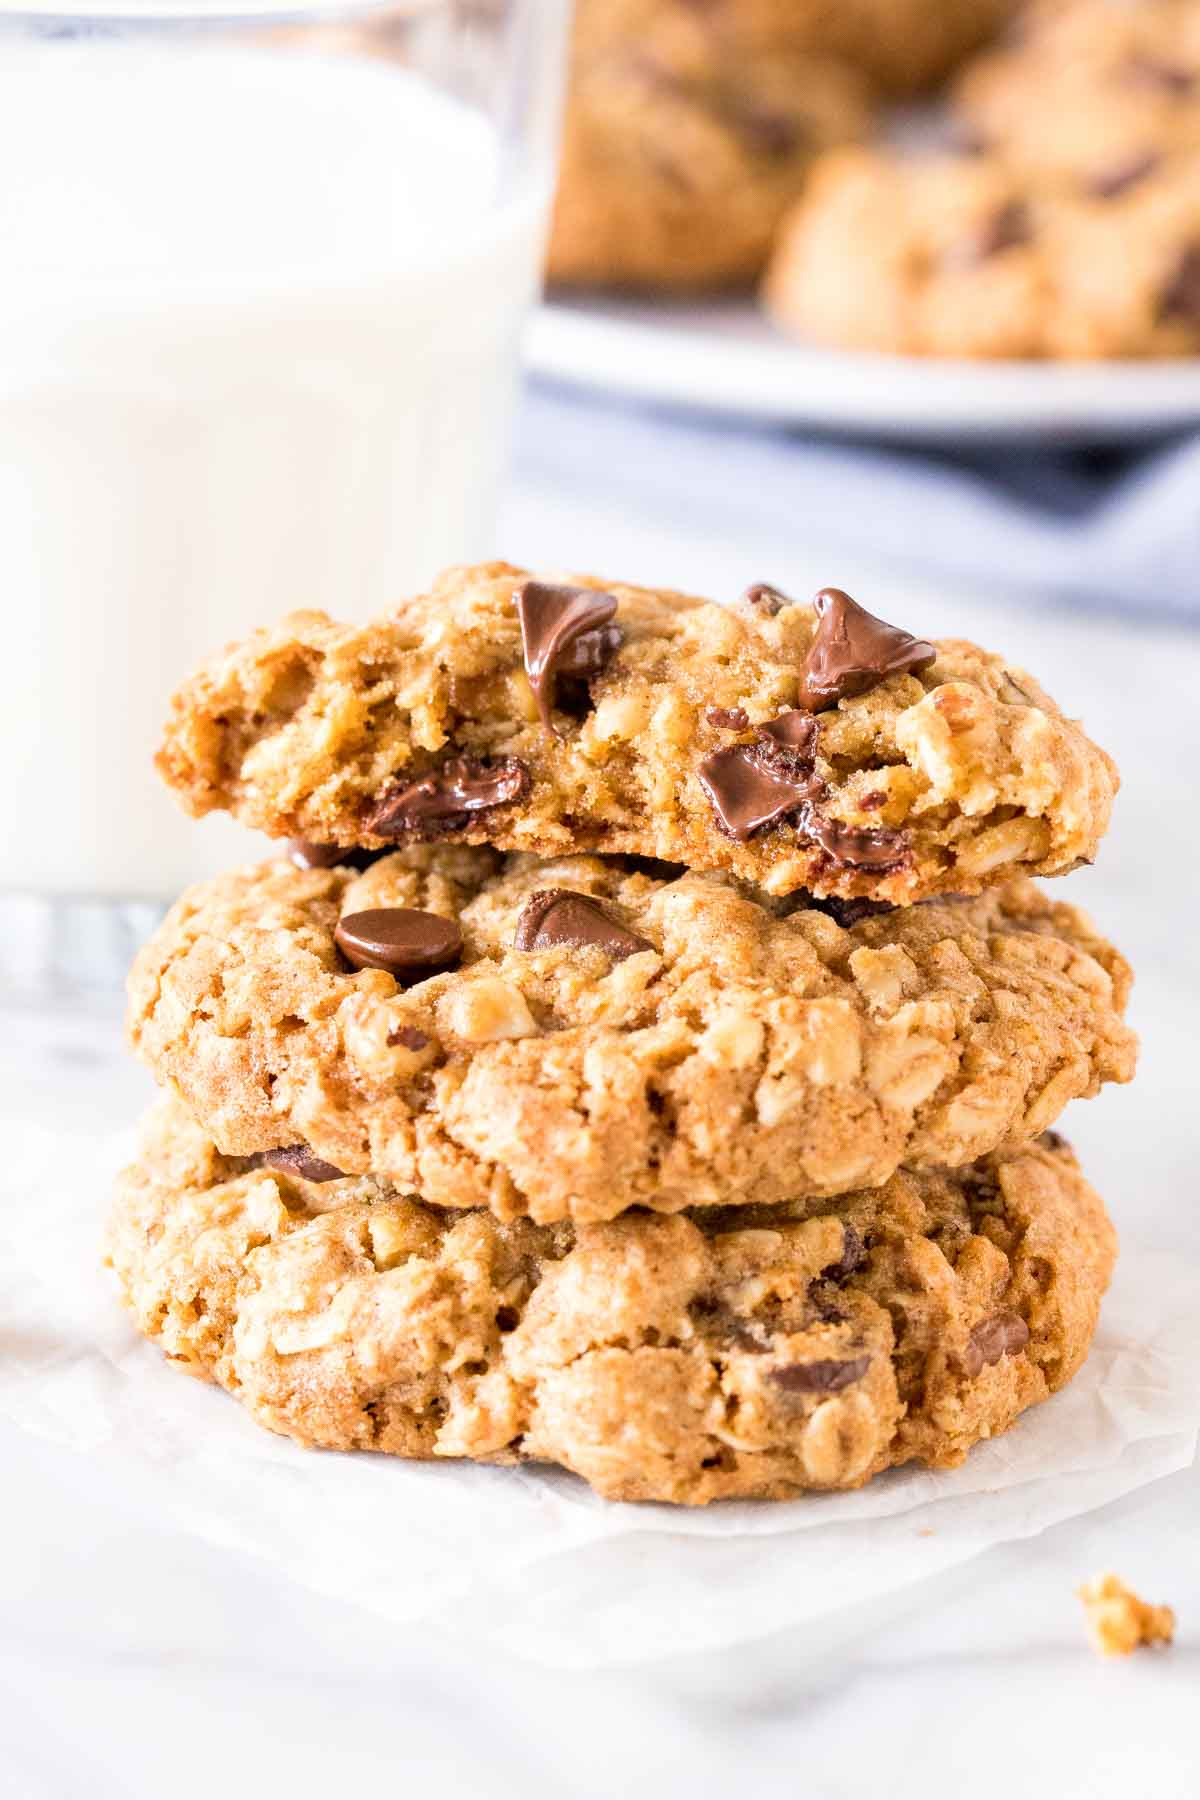 Stack of 3 oatmeal chocolate chip cookies with the top cookie broken in half.